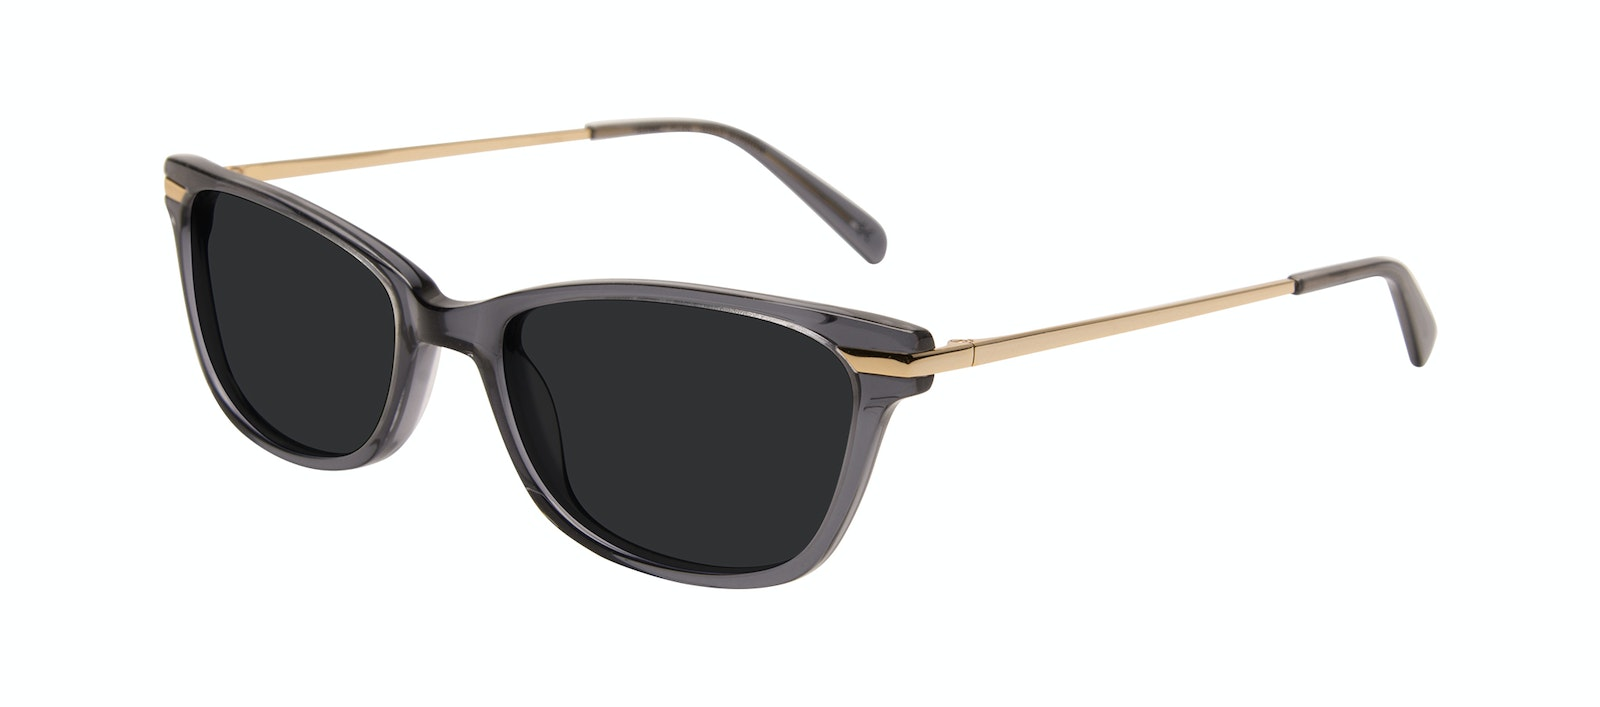 Affordable Fashion Glasses Rectangle Sunglasses Women Comet Plus Gold Shadow Tilt